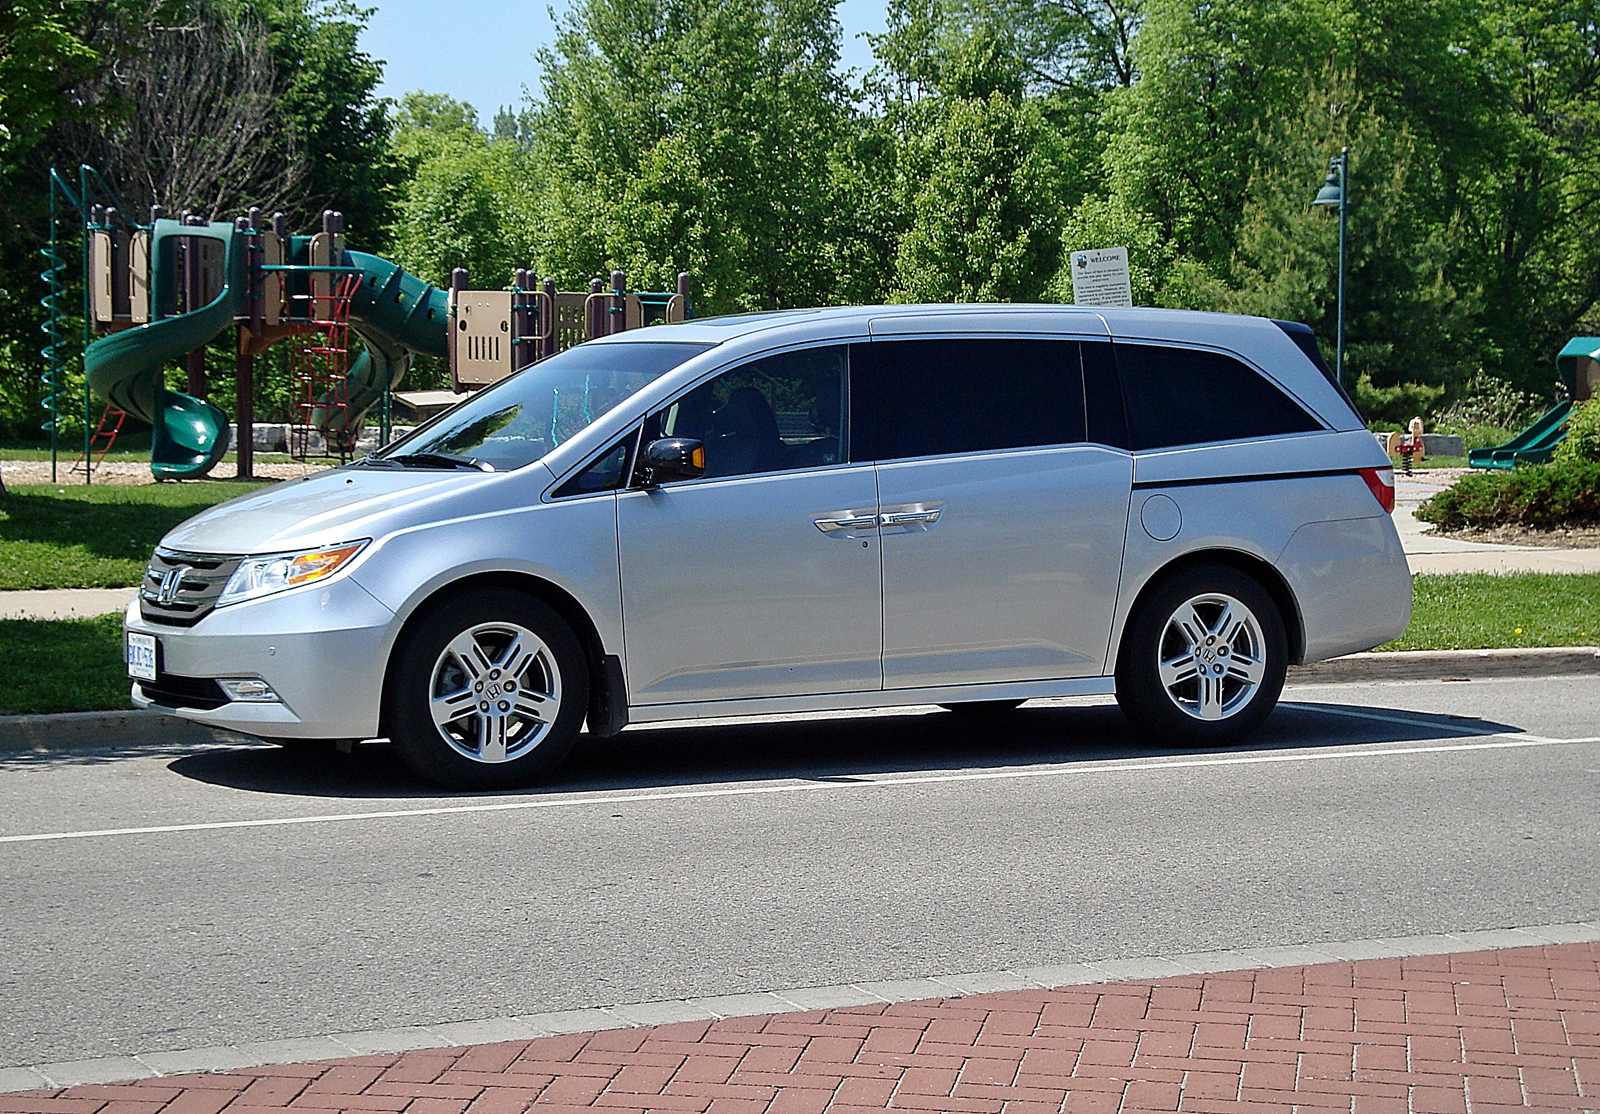 Where Minivans Are Concerned What A Difference Decade Makes